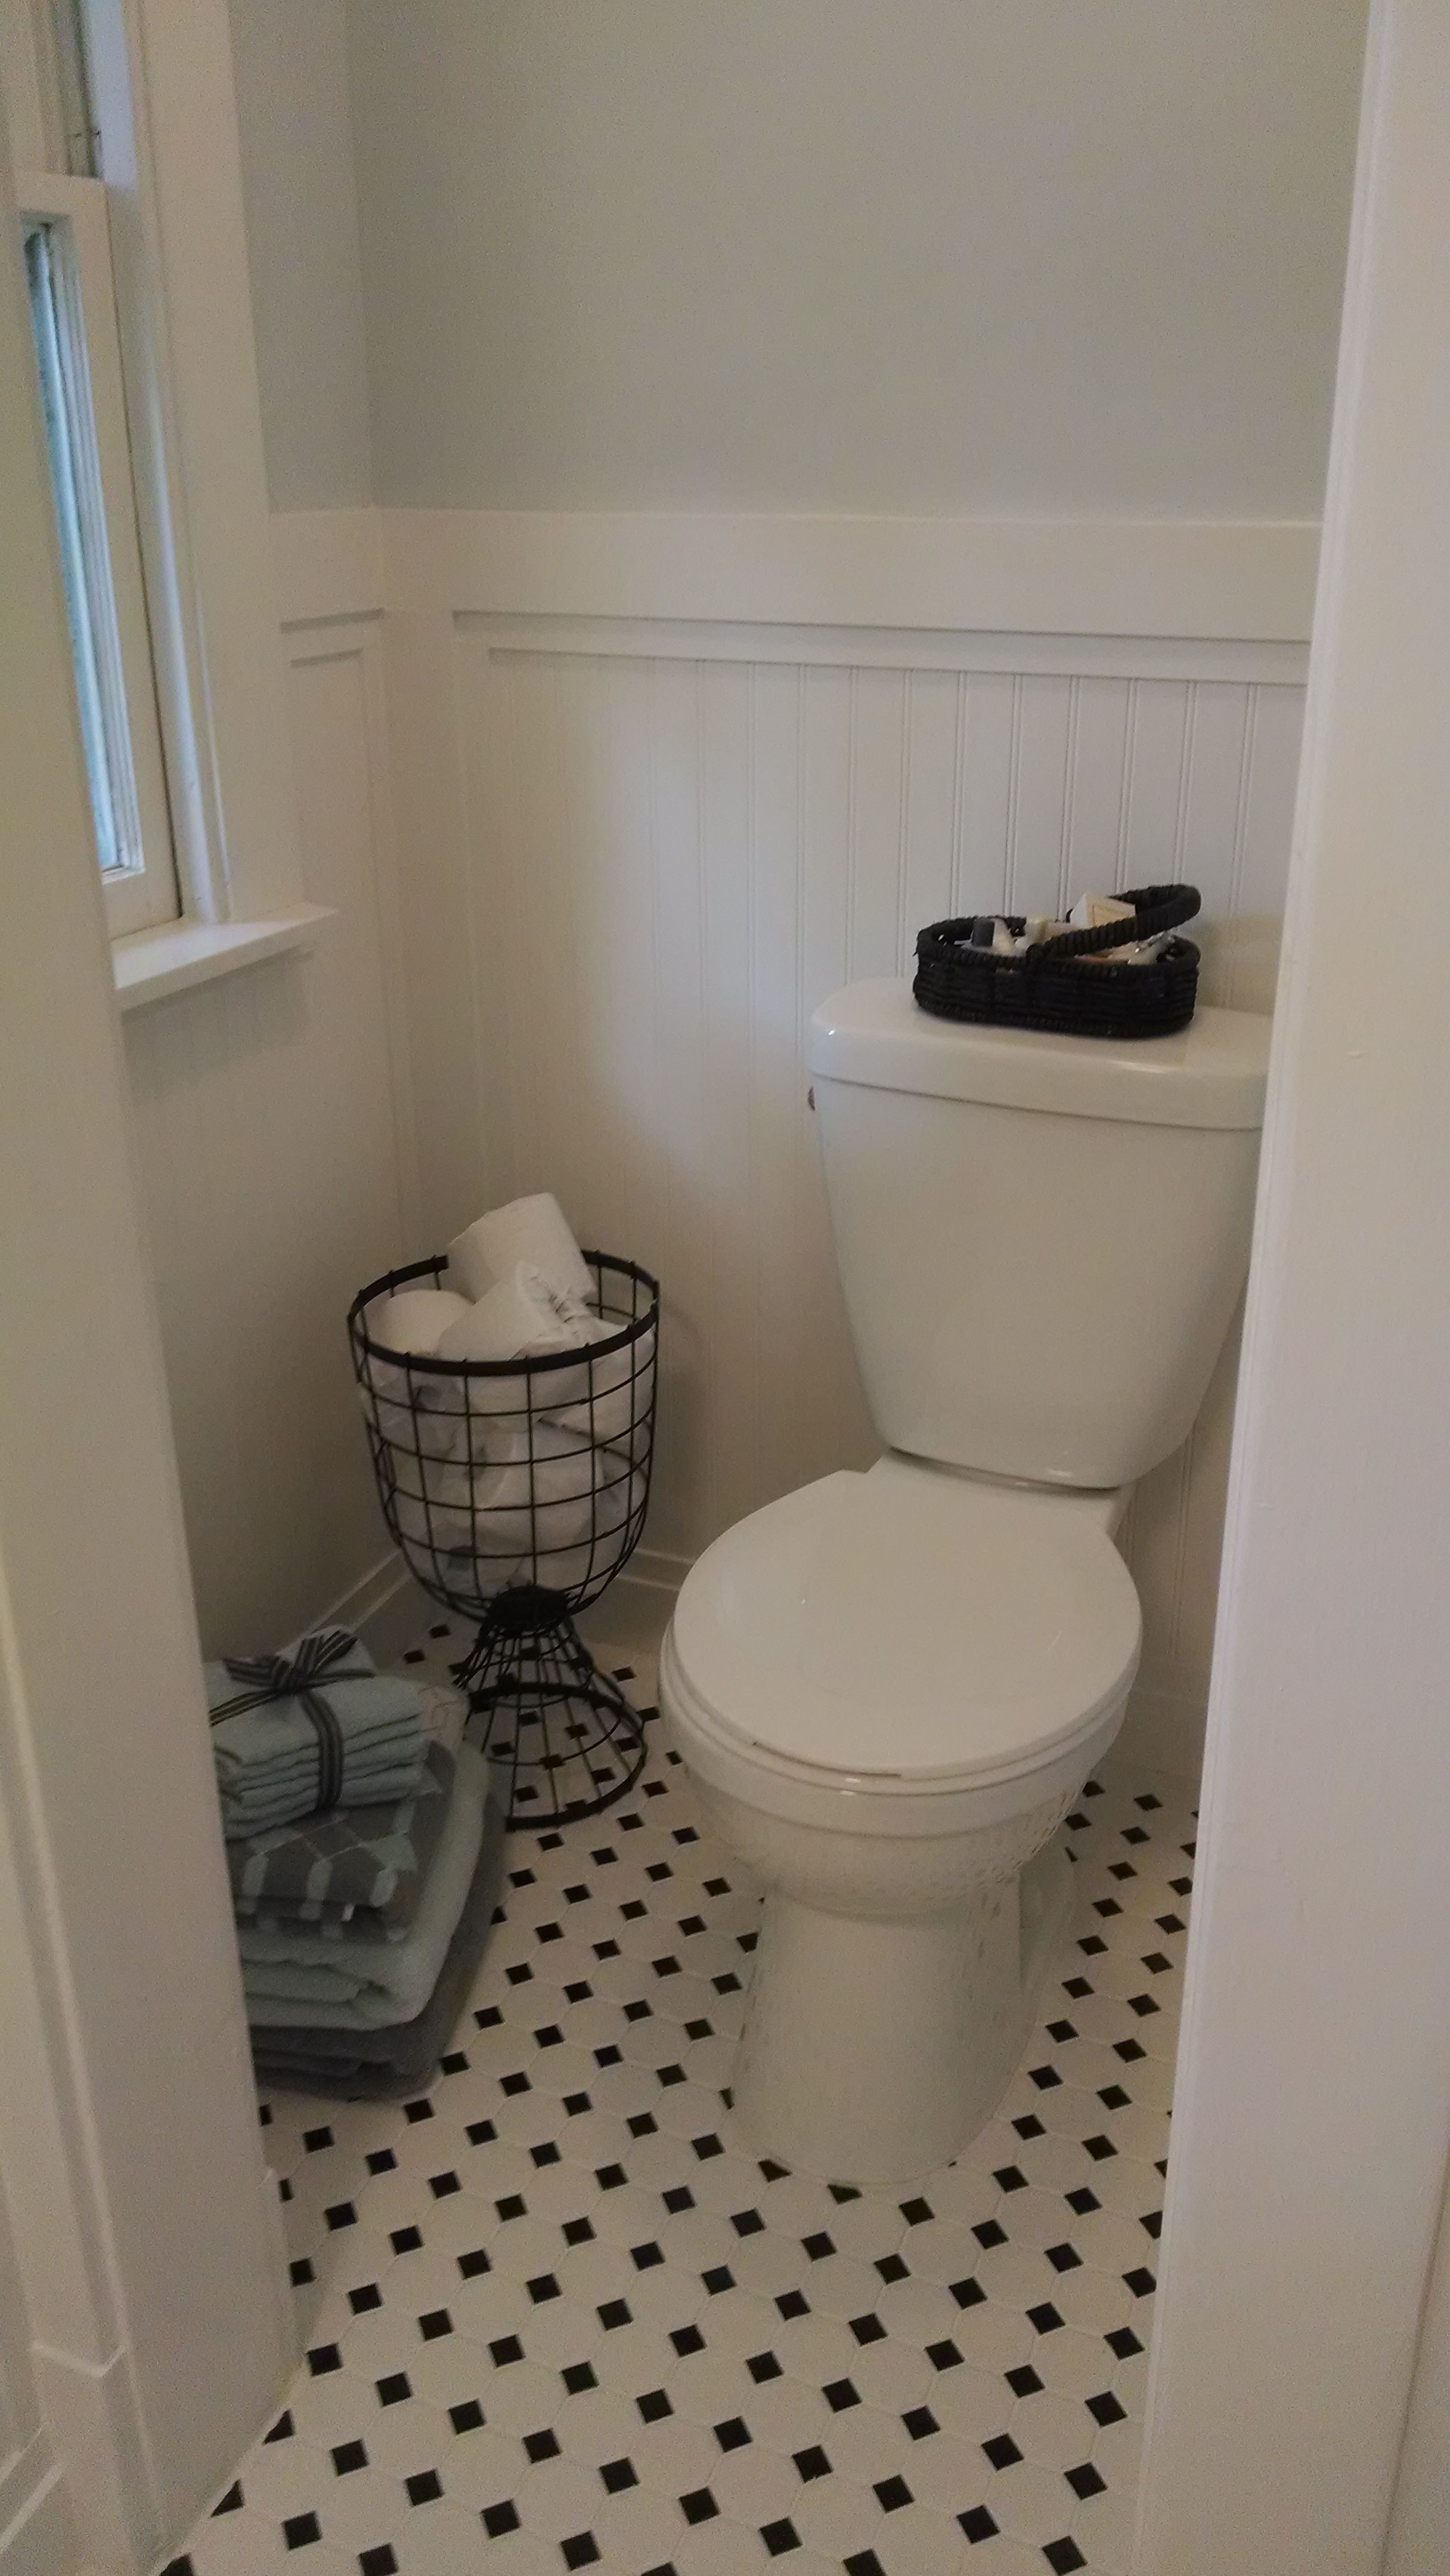 This Was The Linen Closet It S A Much Better Use Of Space Now Moving The Toilet Opened Up Enough Room To Turn The Tub And Create Space Toilettes